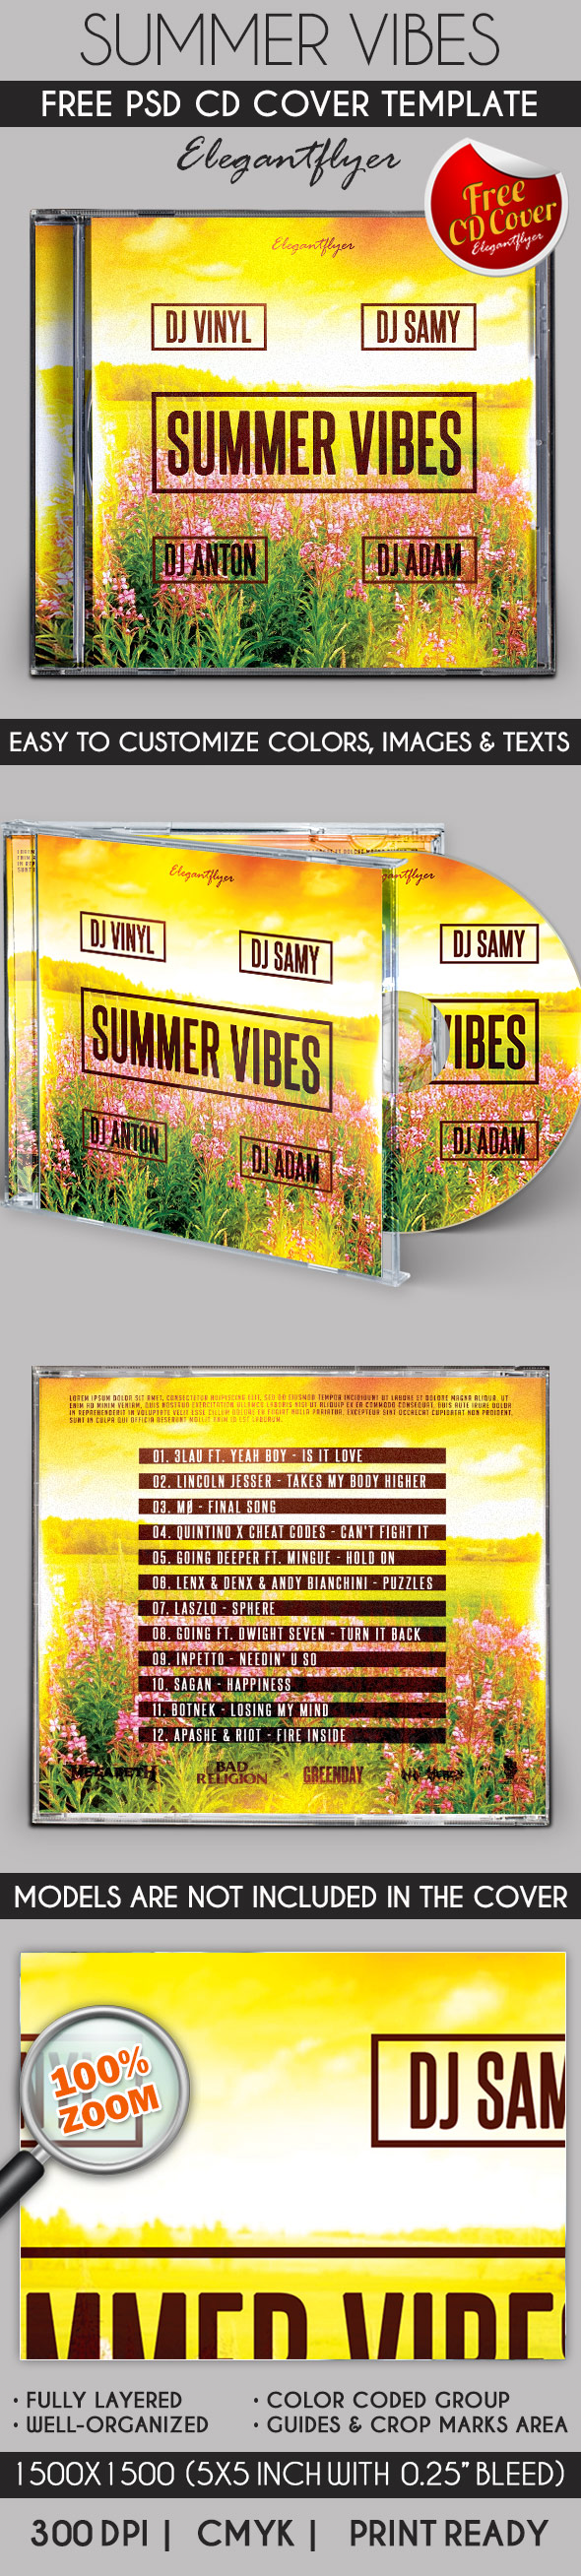 Summer Vibes Free CD template